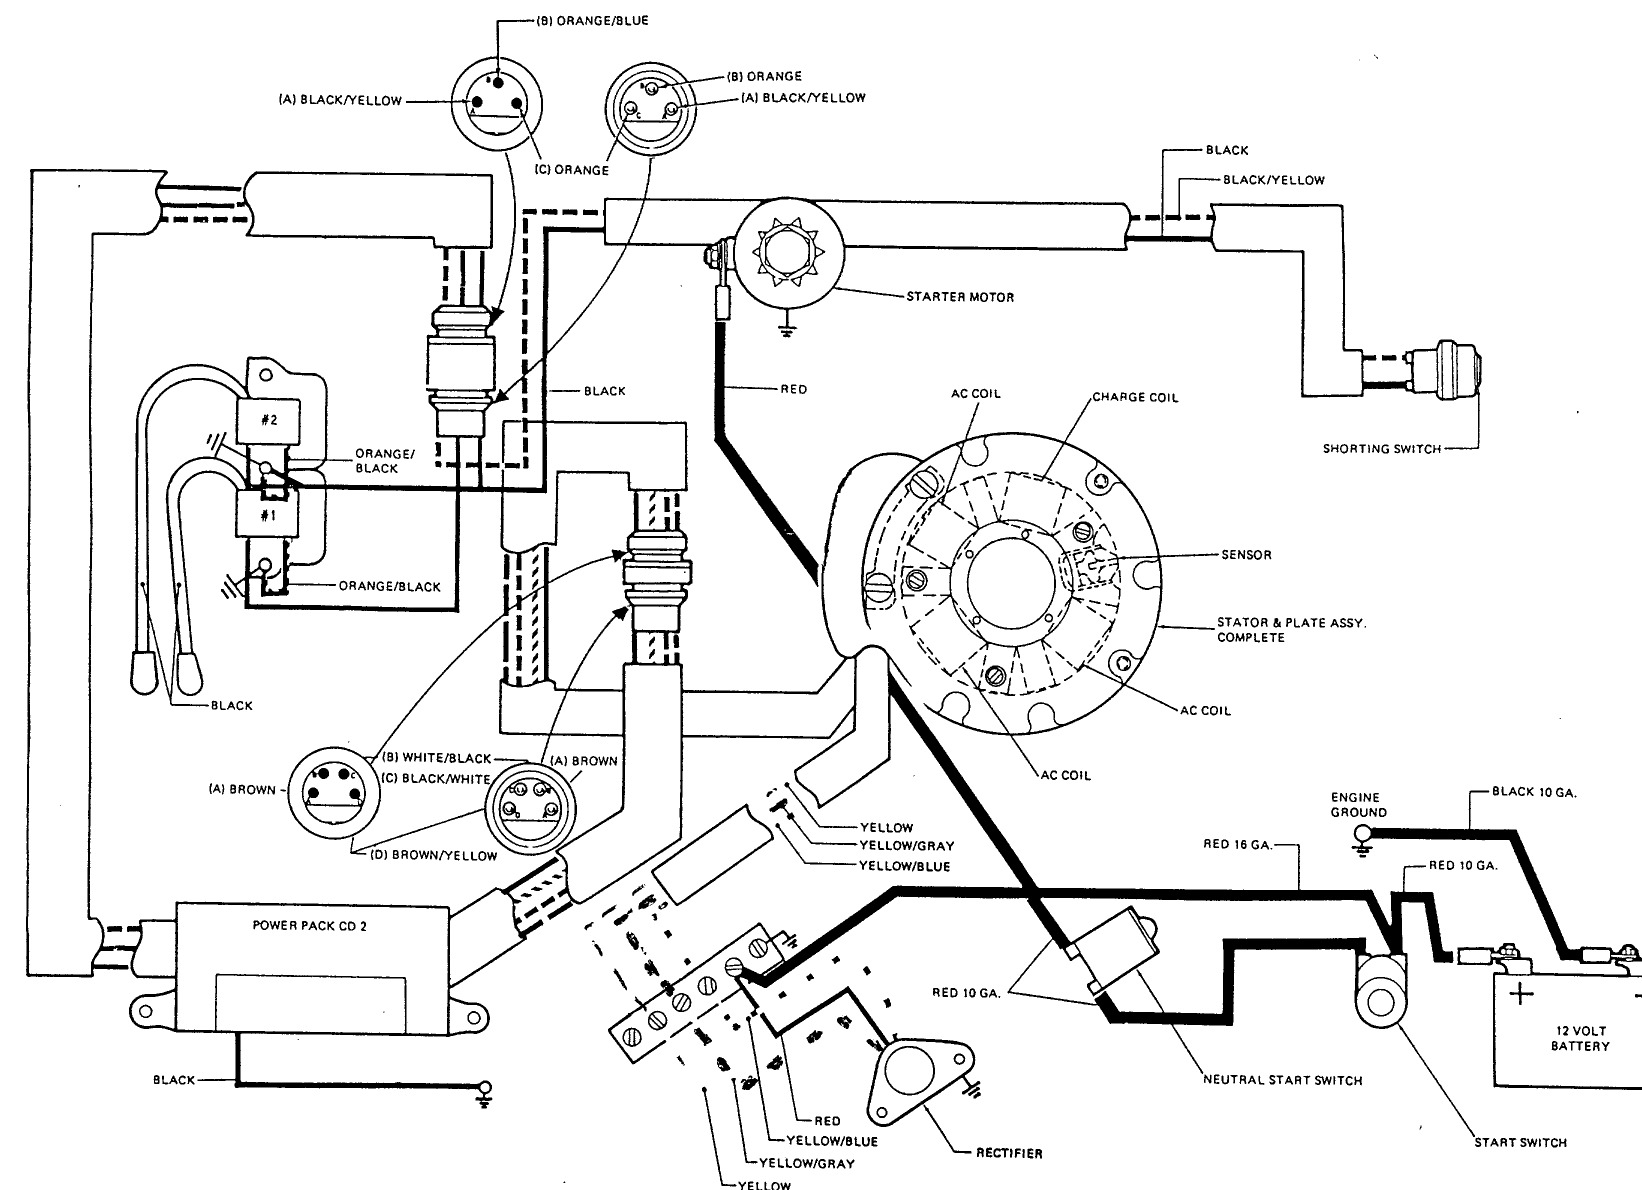 maintaining johnson 9 9 troubleshooting 70 HP Mariner Outboard Wiring Diagram  70 HP Mercury Outboard Motor Diagram 90 HP Force Outboard Wiring Diagram 120 HP Force Outboard Wiring Diagram